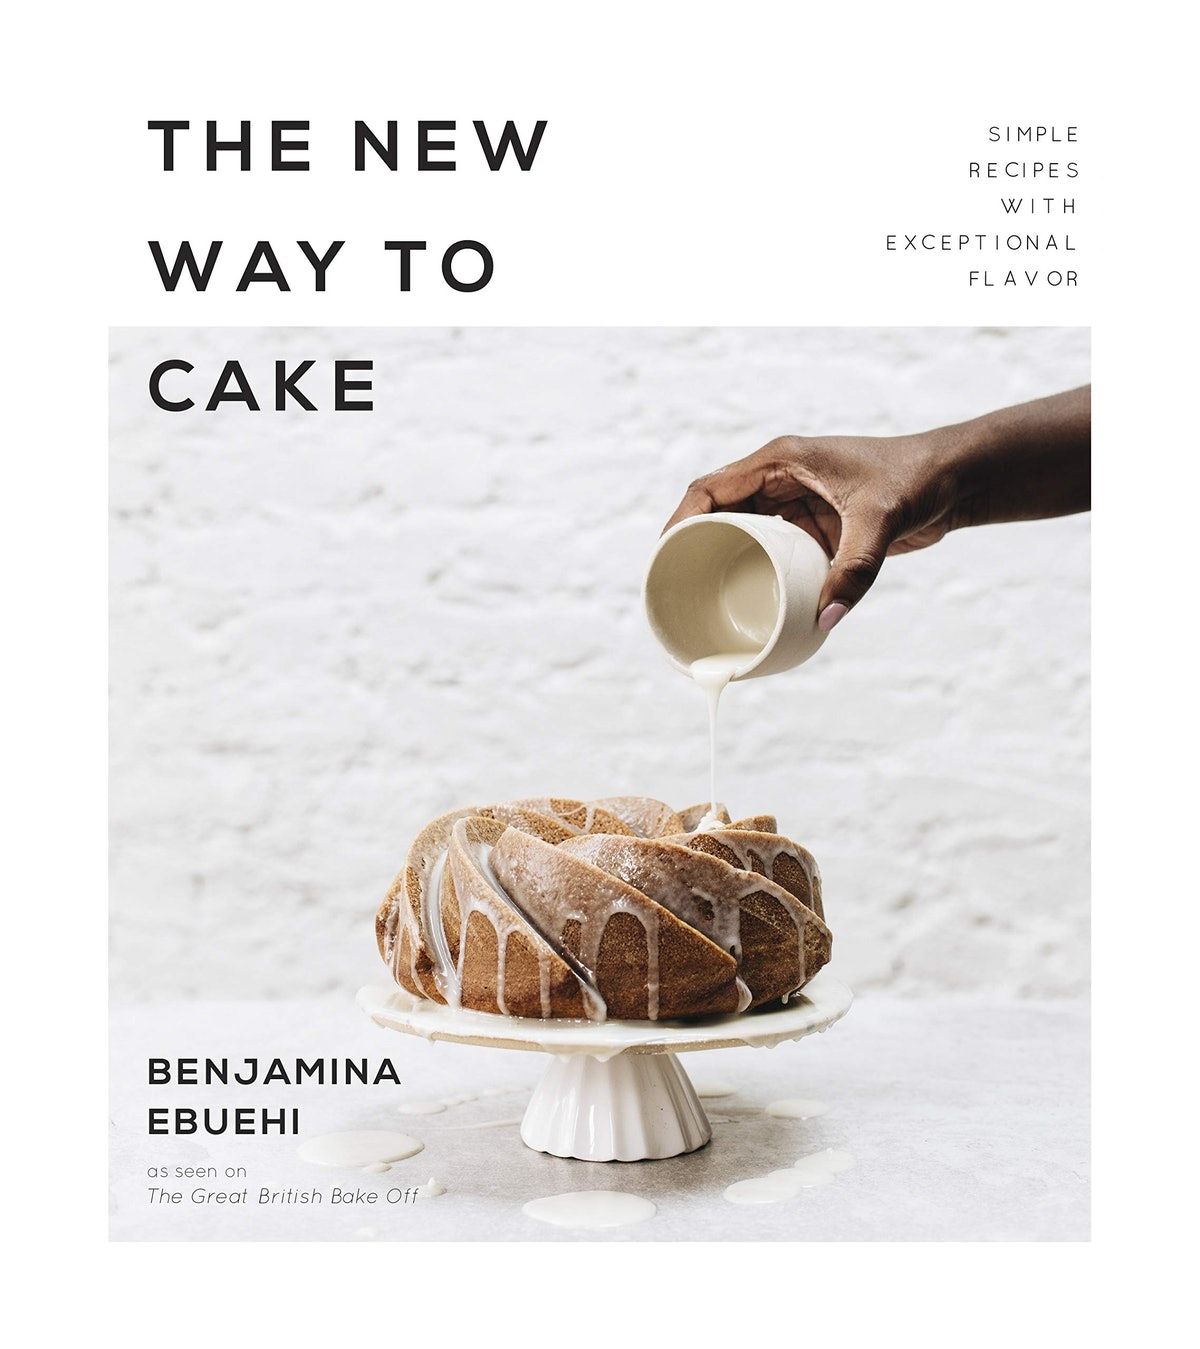 'The New Way to Cake: Simple Recipes with Exceptional Flavor' by Benjamina Ebuehi